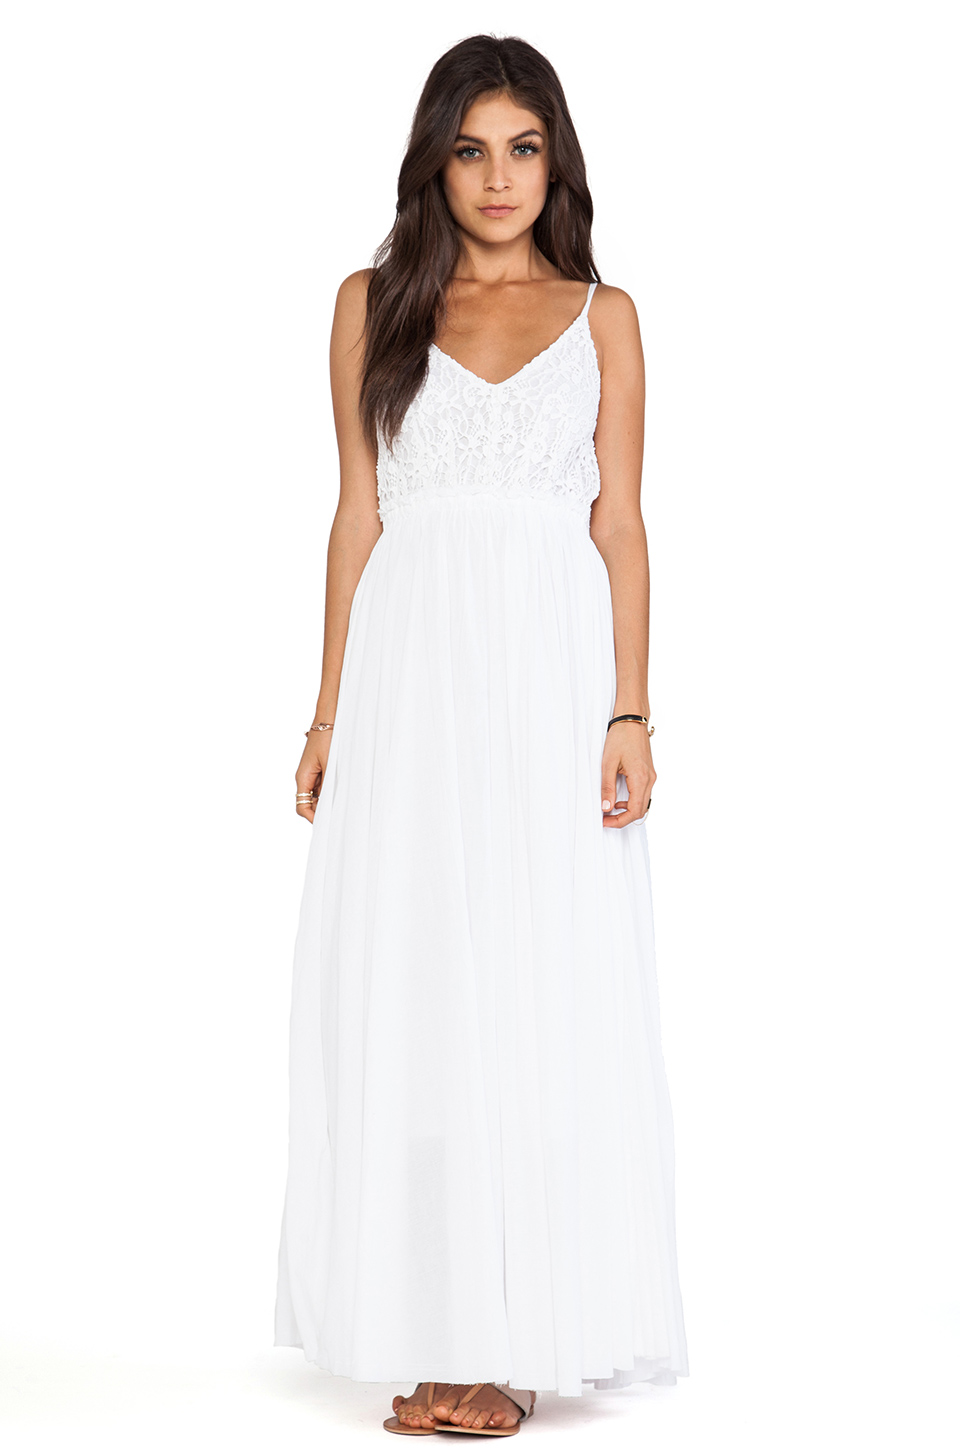 white backless maxi dress backless dress backless dress